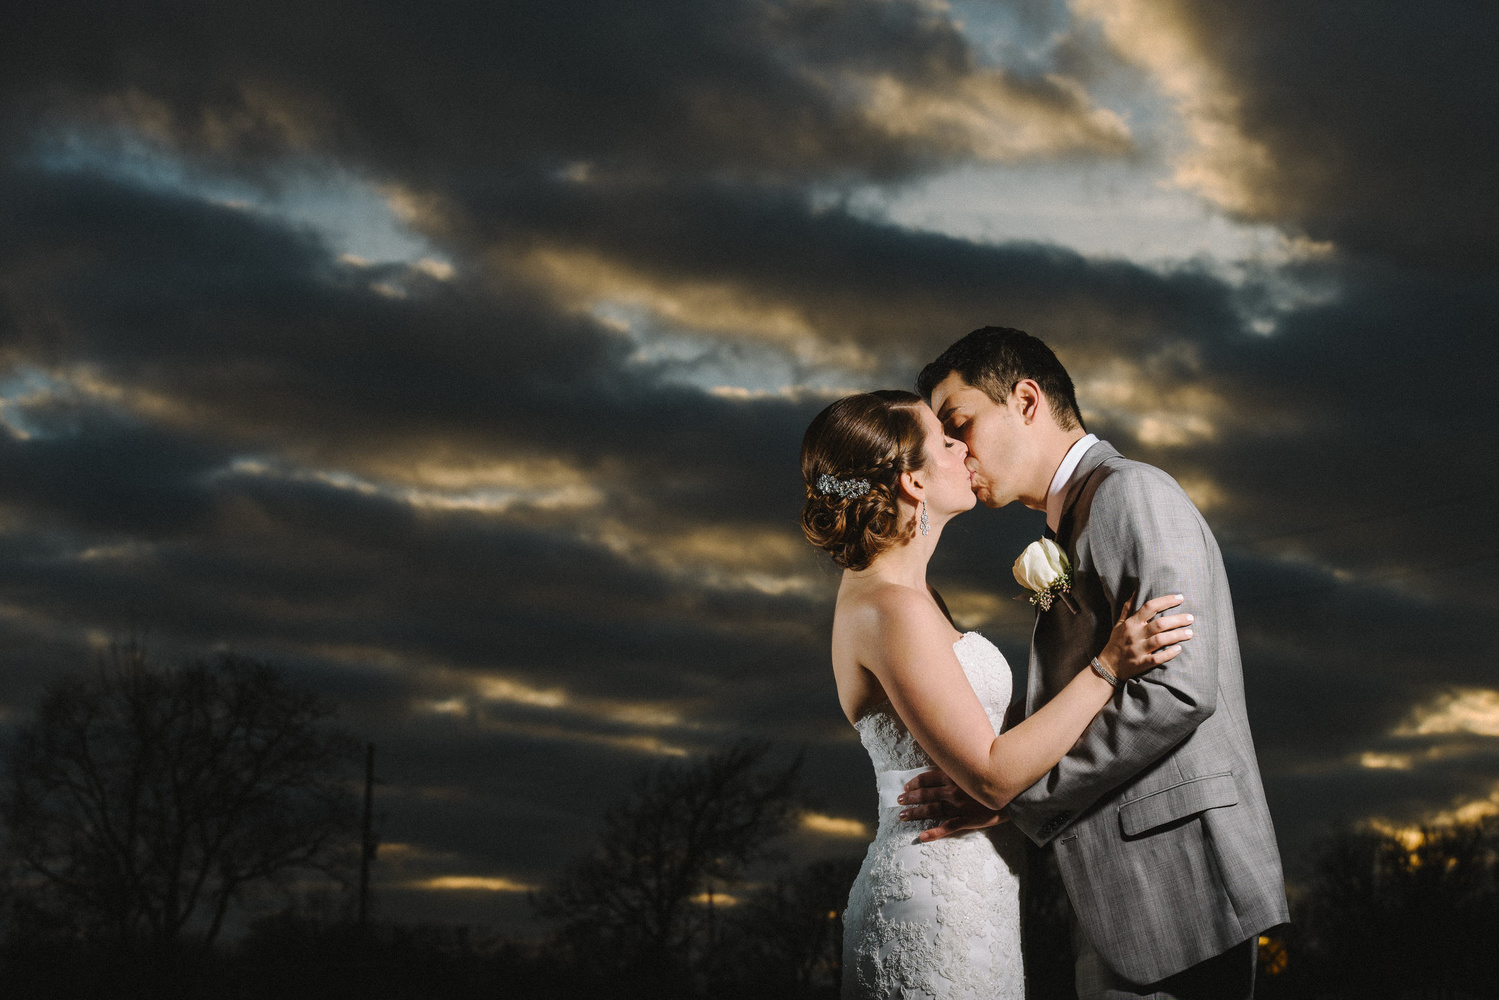 Couple kissing during sunset with dramatic clouds